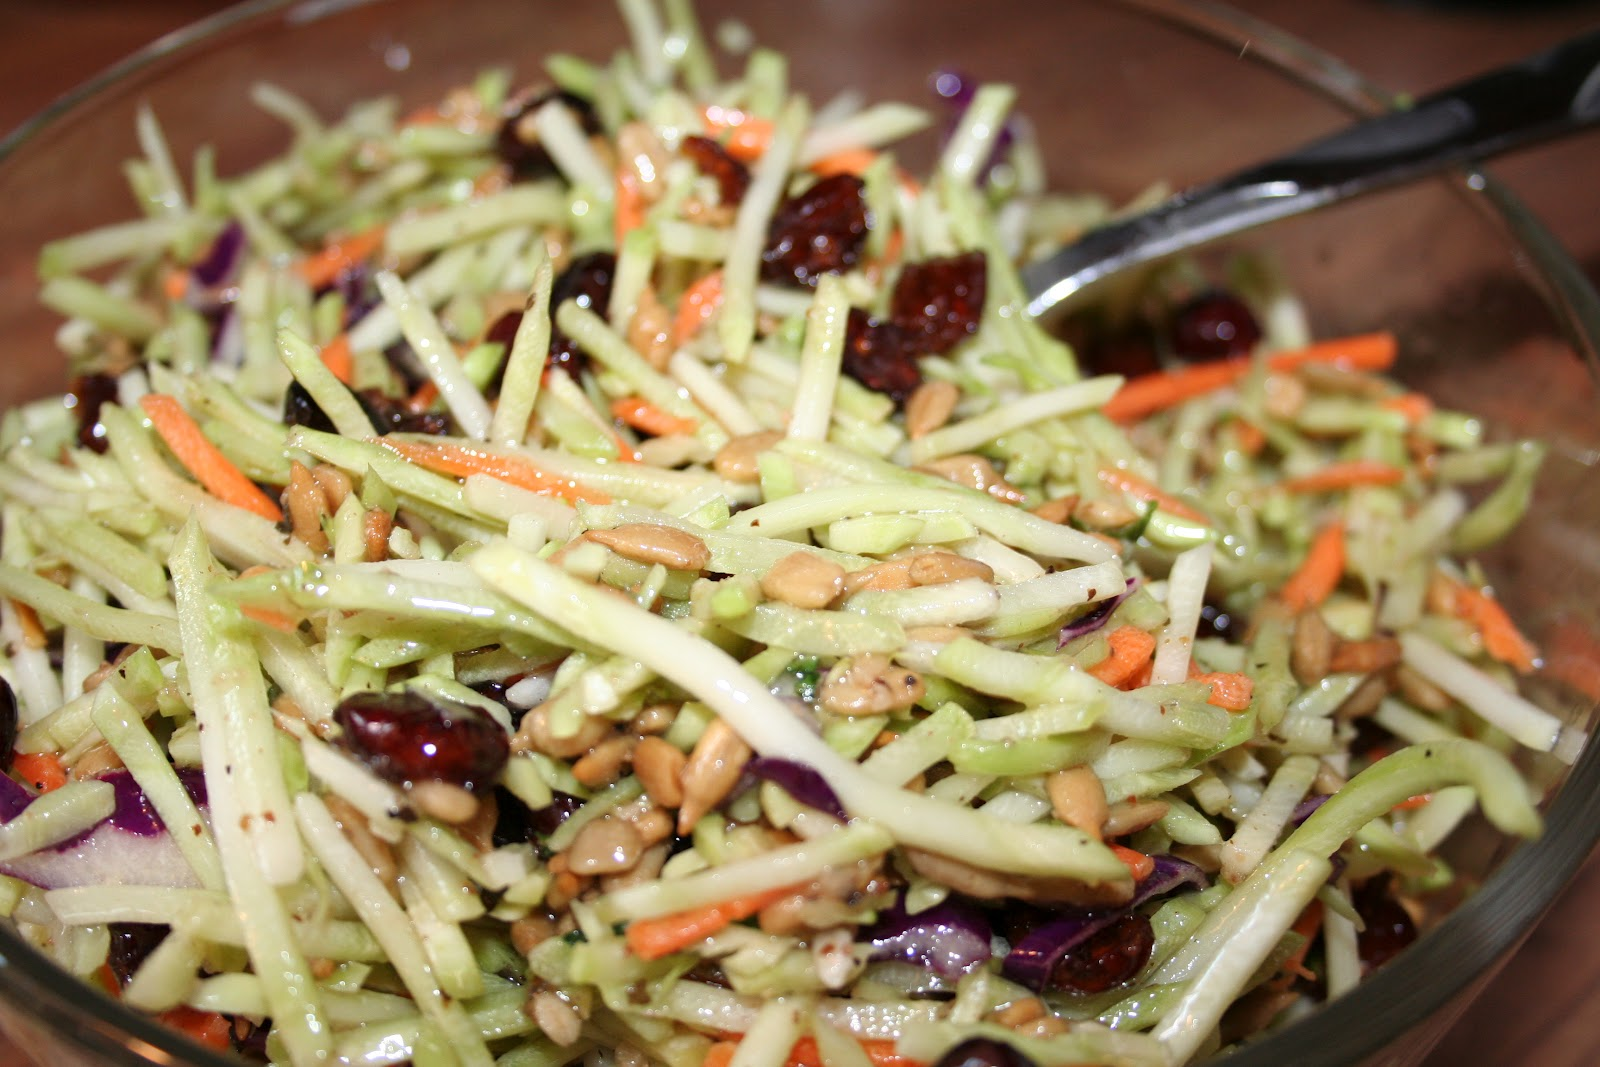 Broccoli Slaw with Cranberries & Sunflower Seeds